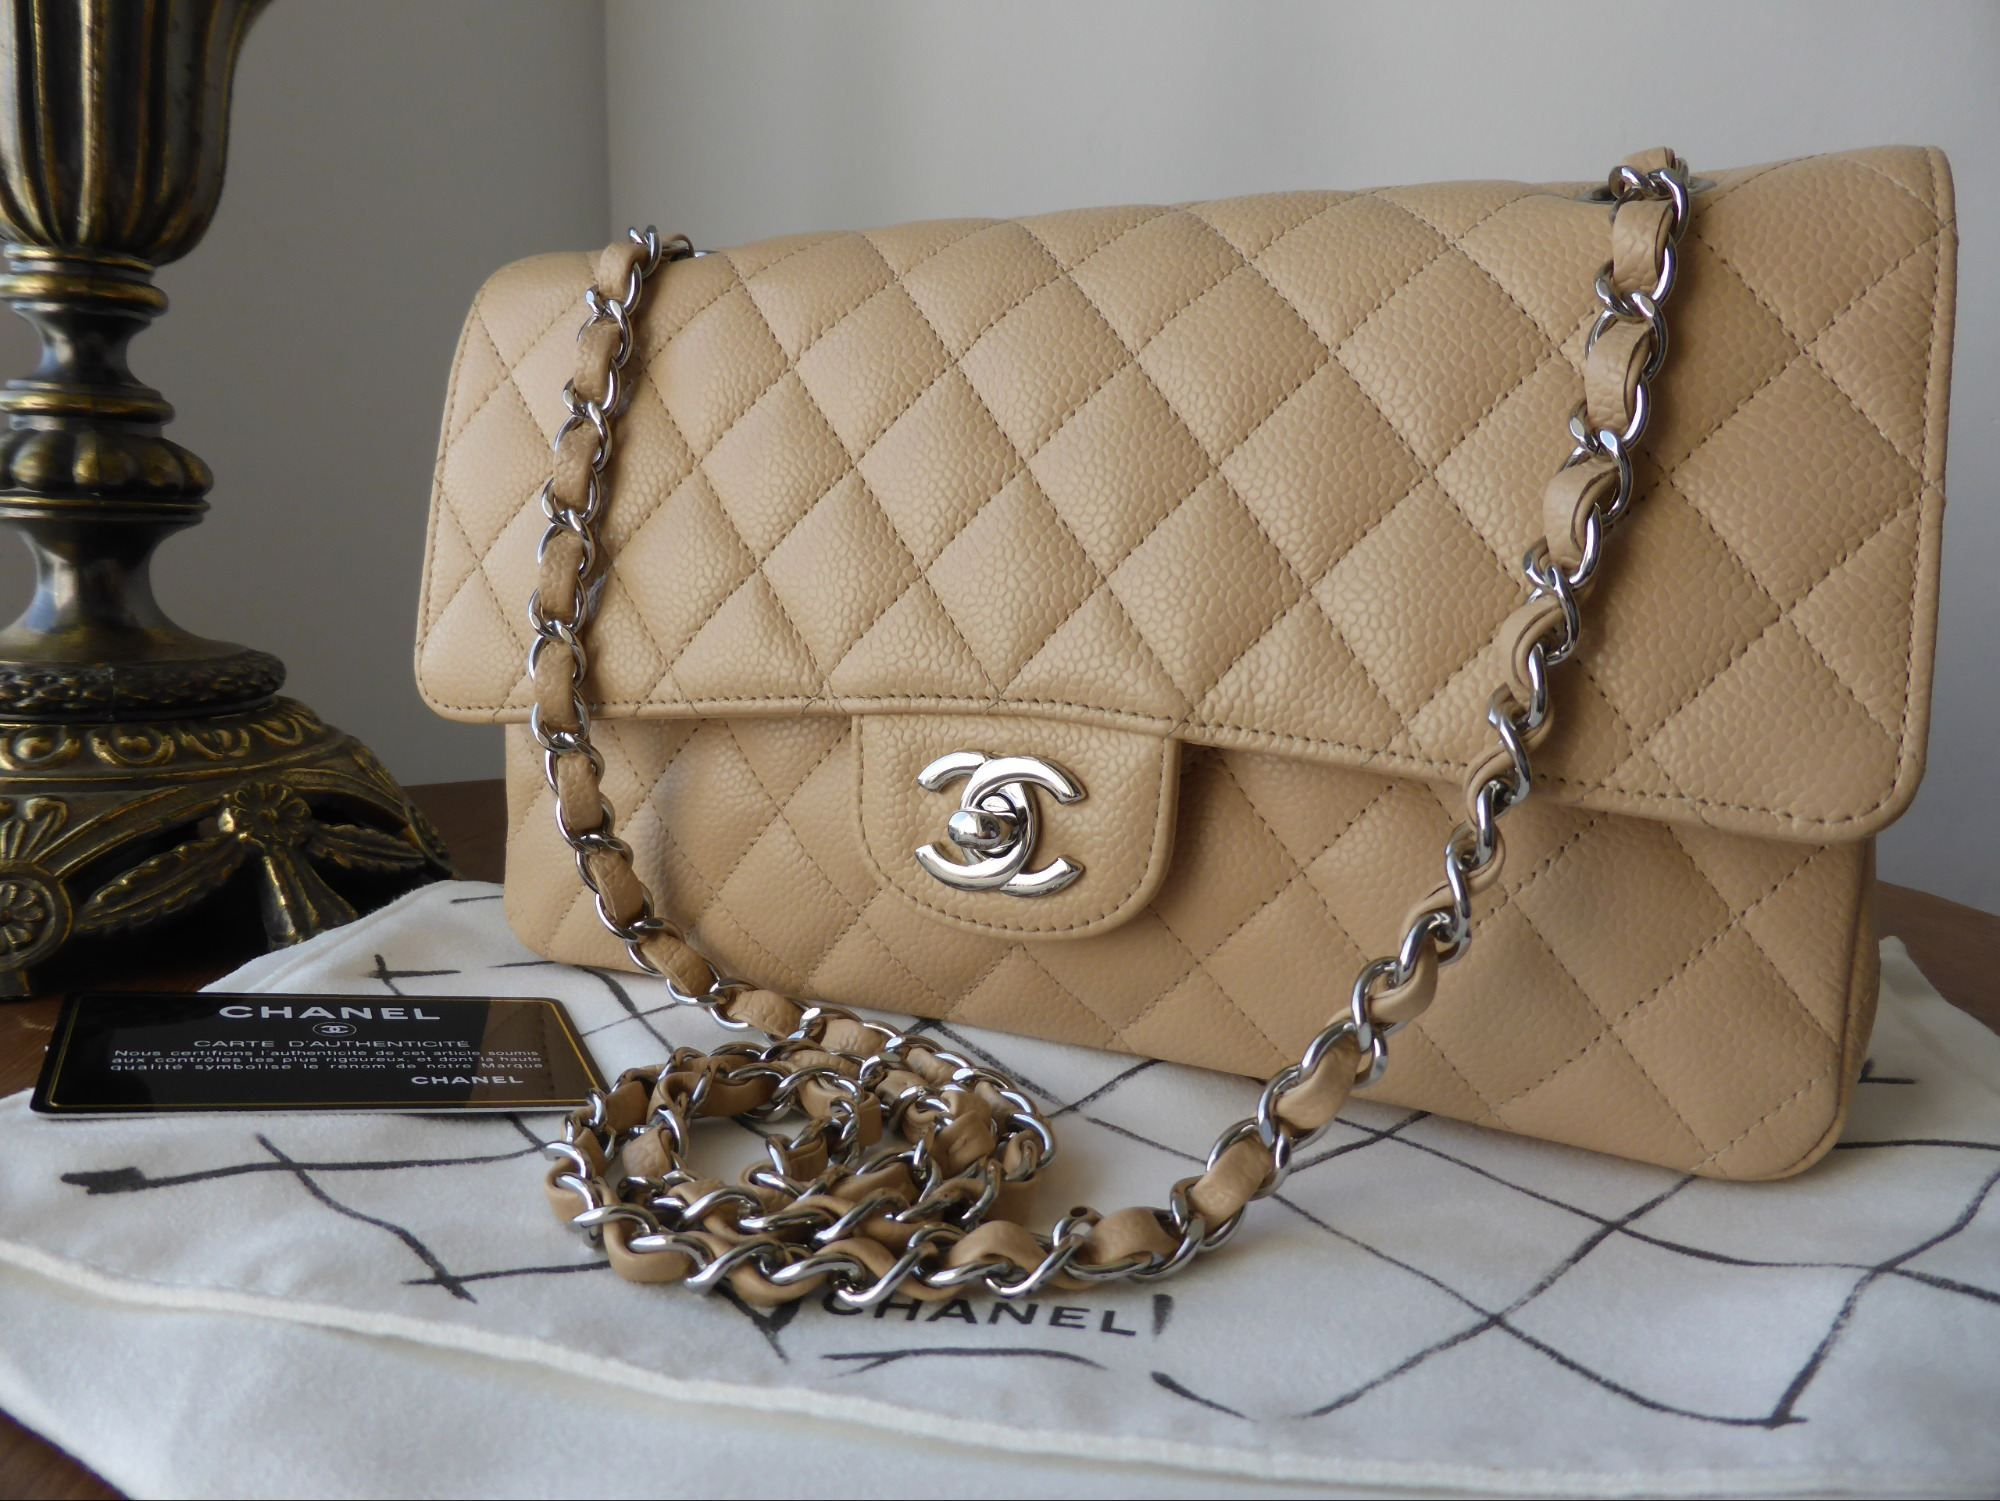 41c1df91c94f Chanel Classic 2.55 Medium Flap in Beige Caviar with Silver Hardware  gt   http